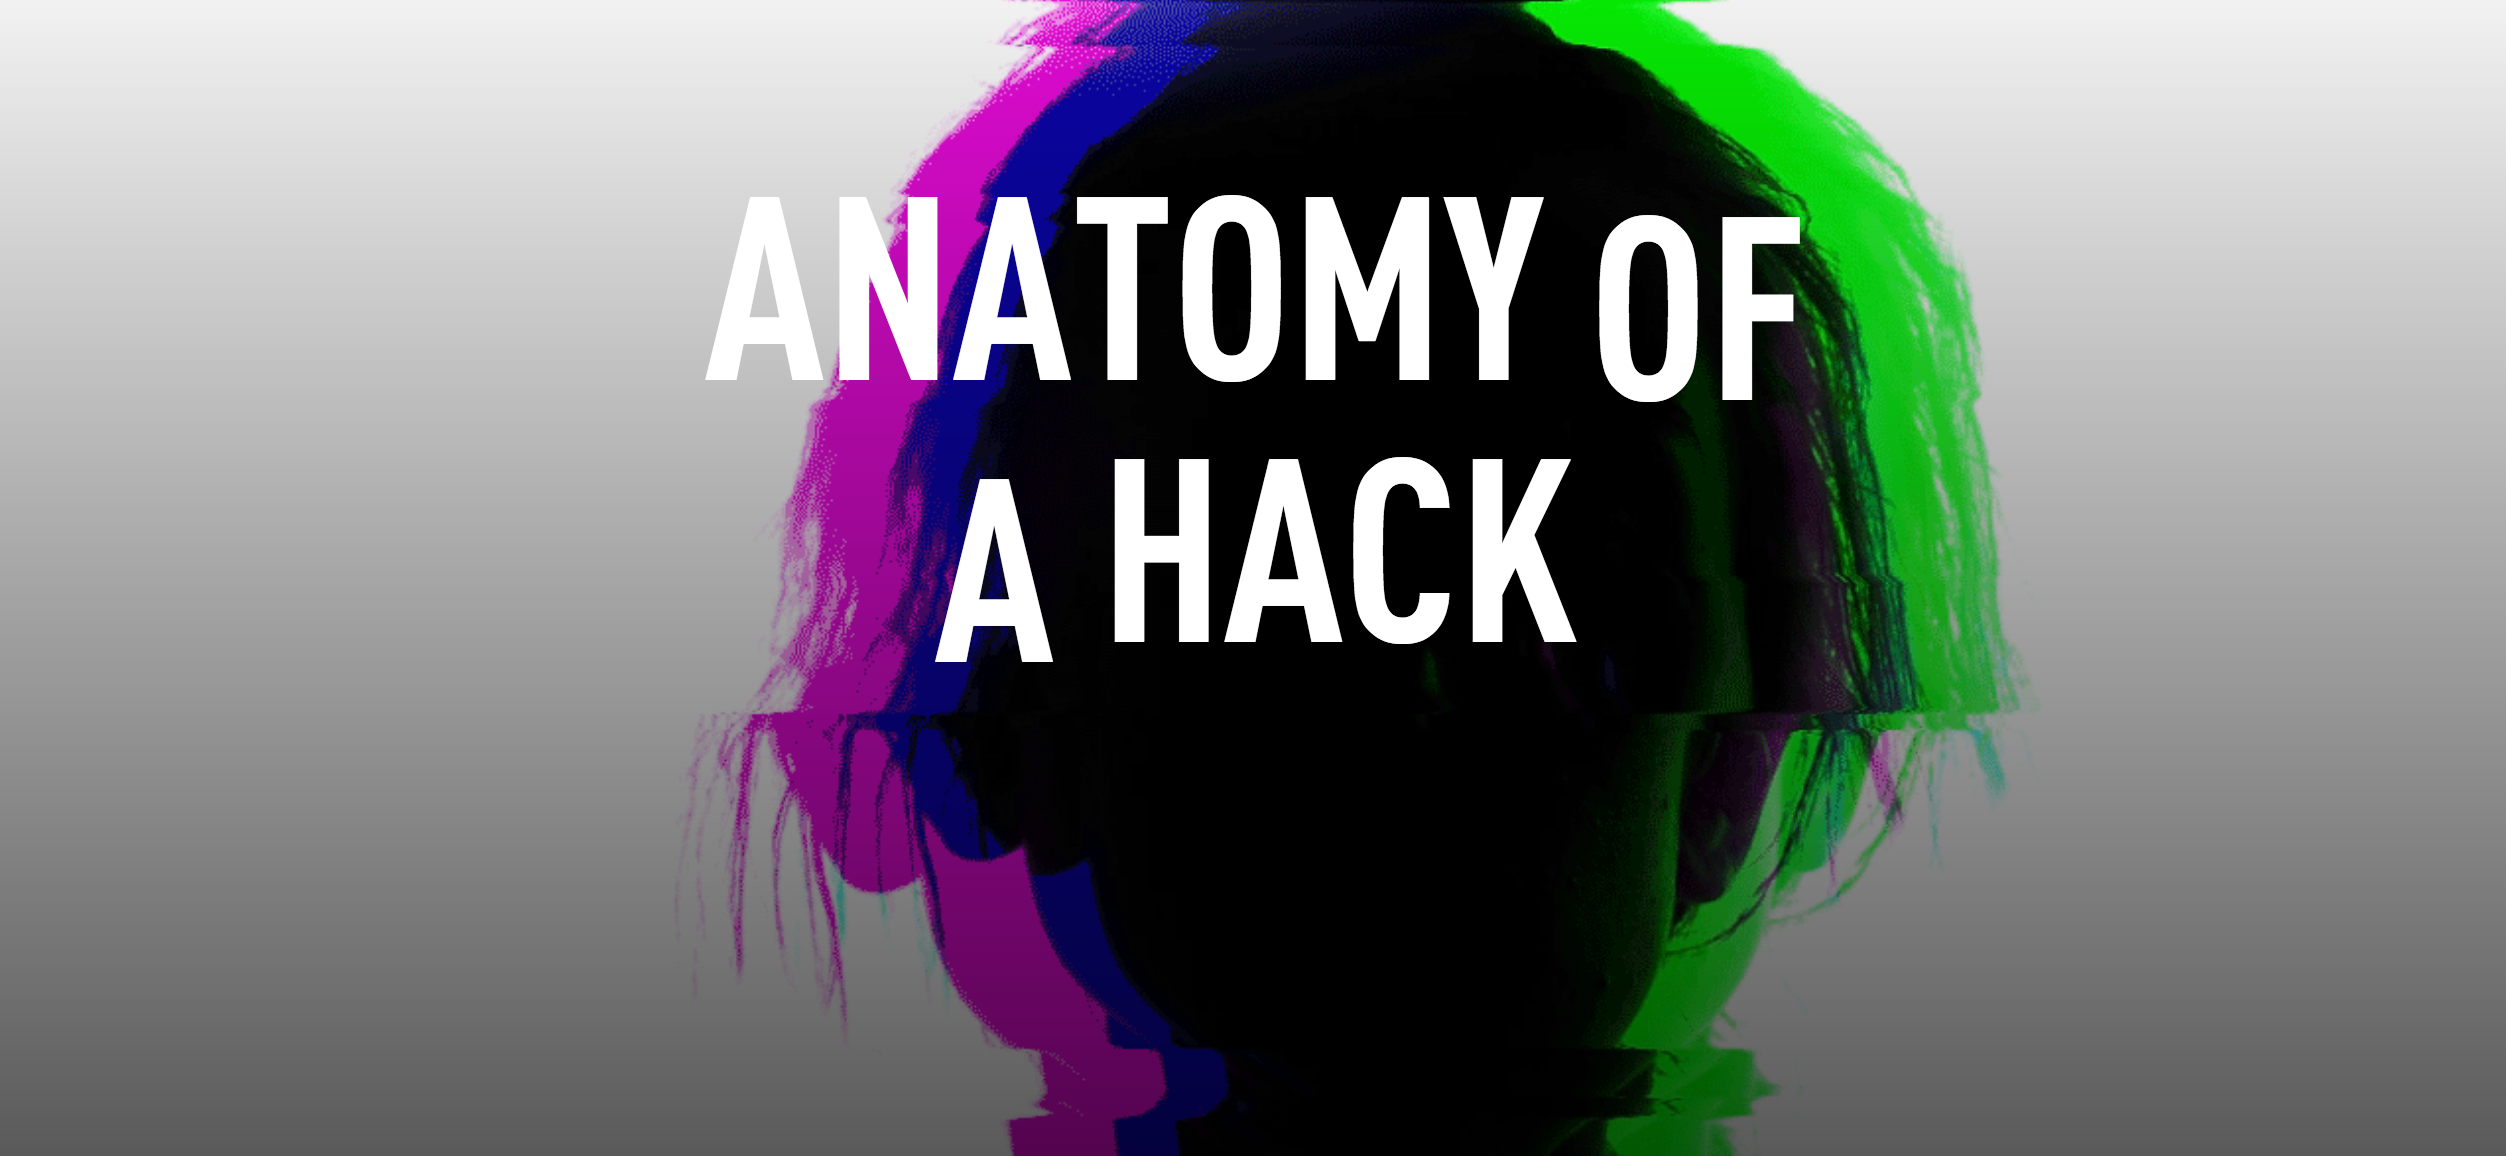 Anatomy of a Hack